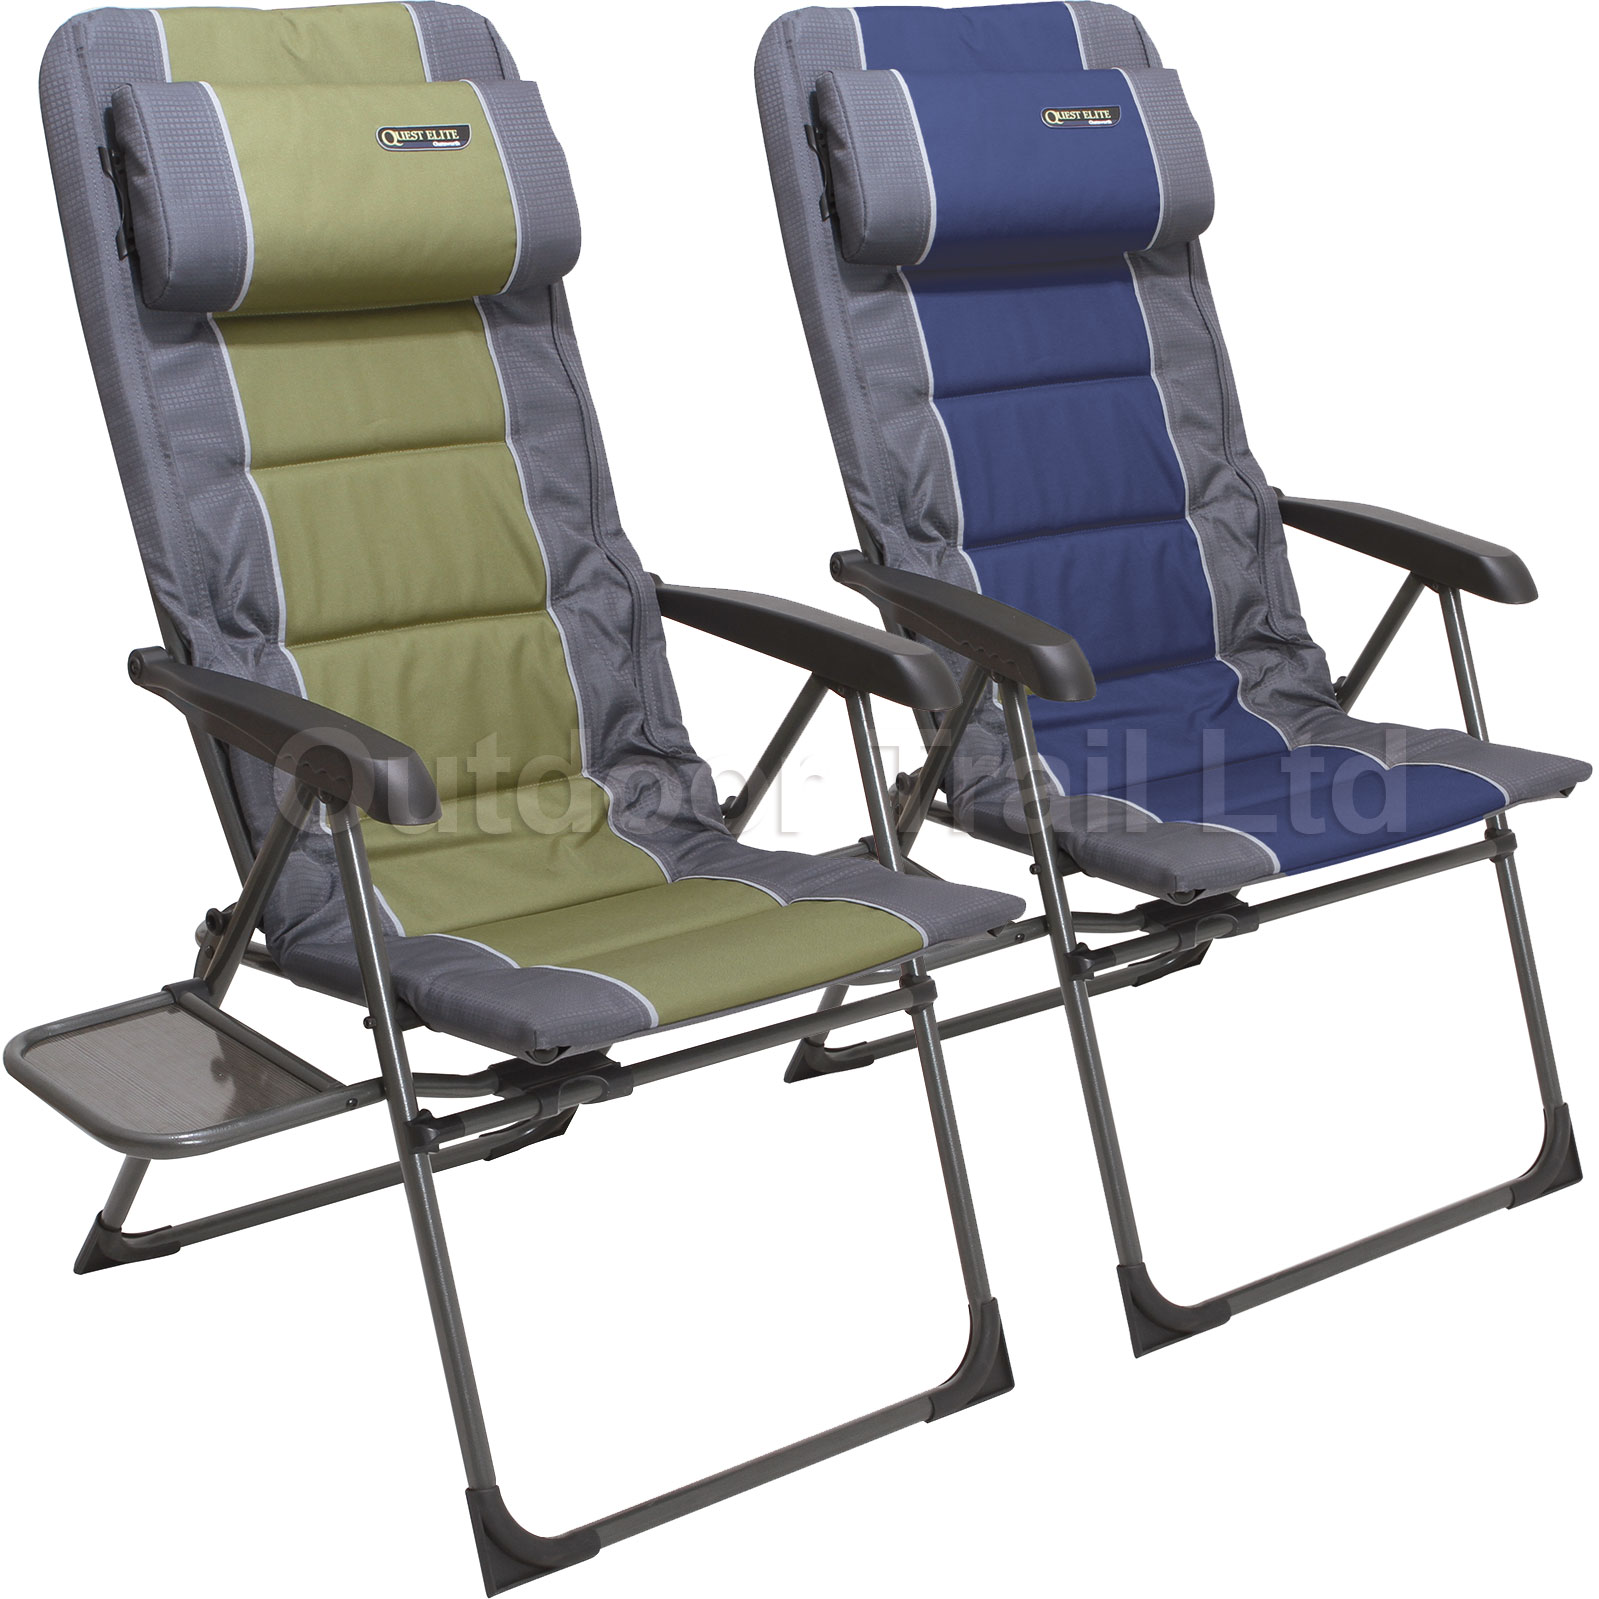 Quest Elite Ragley SL Folding Portable Camping Seat Chair & Side Table Tw